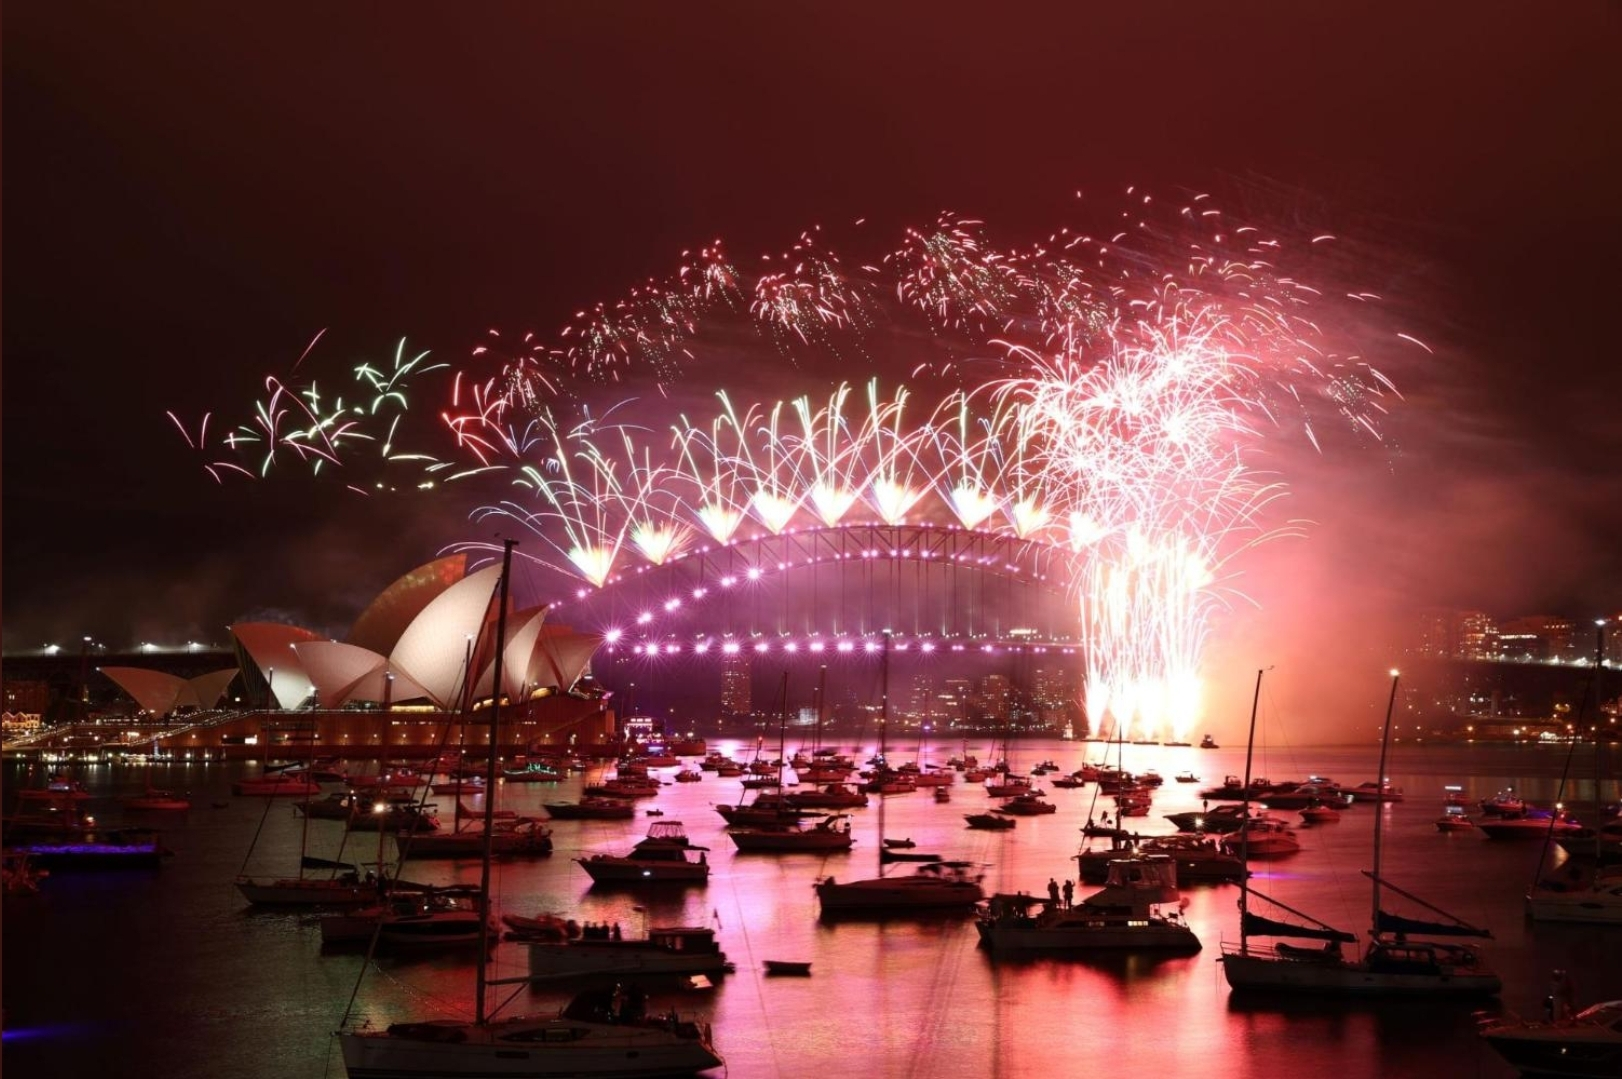 Happy new year everyone from Australia 🎉Here's to a better 2021 😘